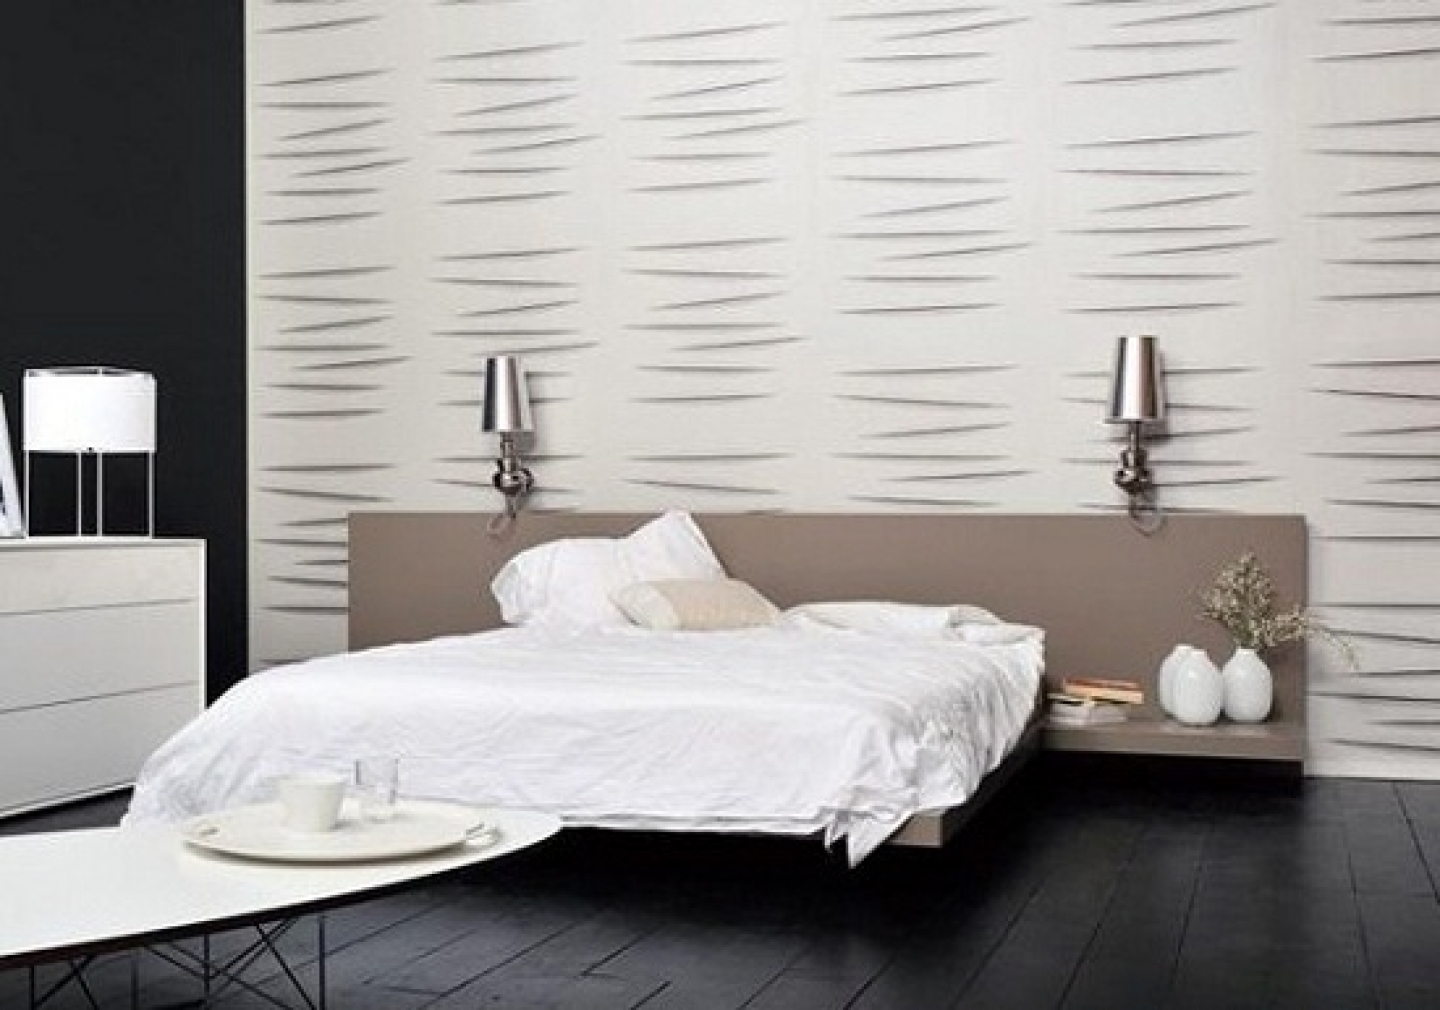 Modern bedroom wallpaper - large and beautiful photos. Photo to ...